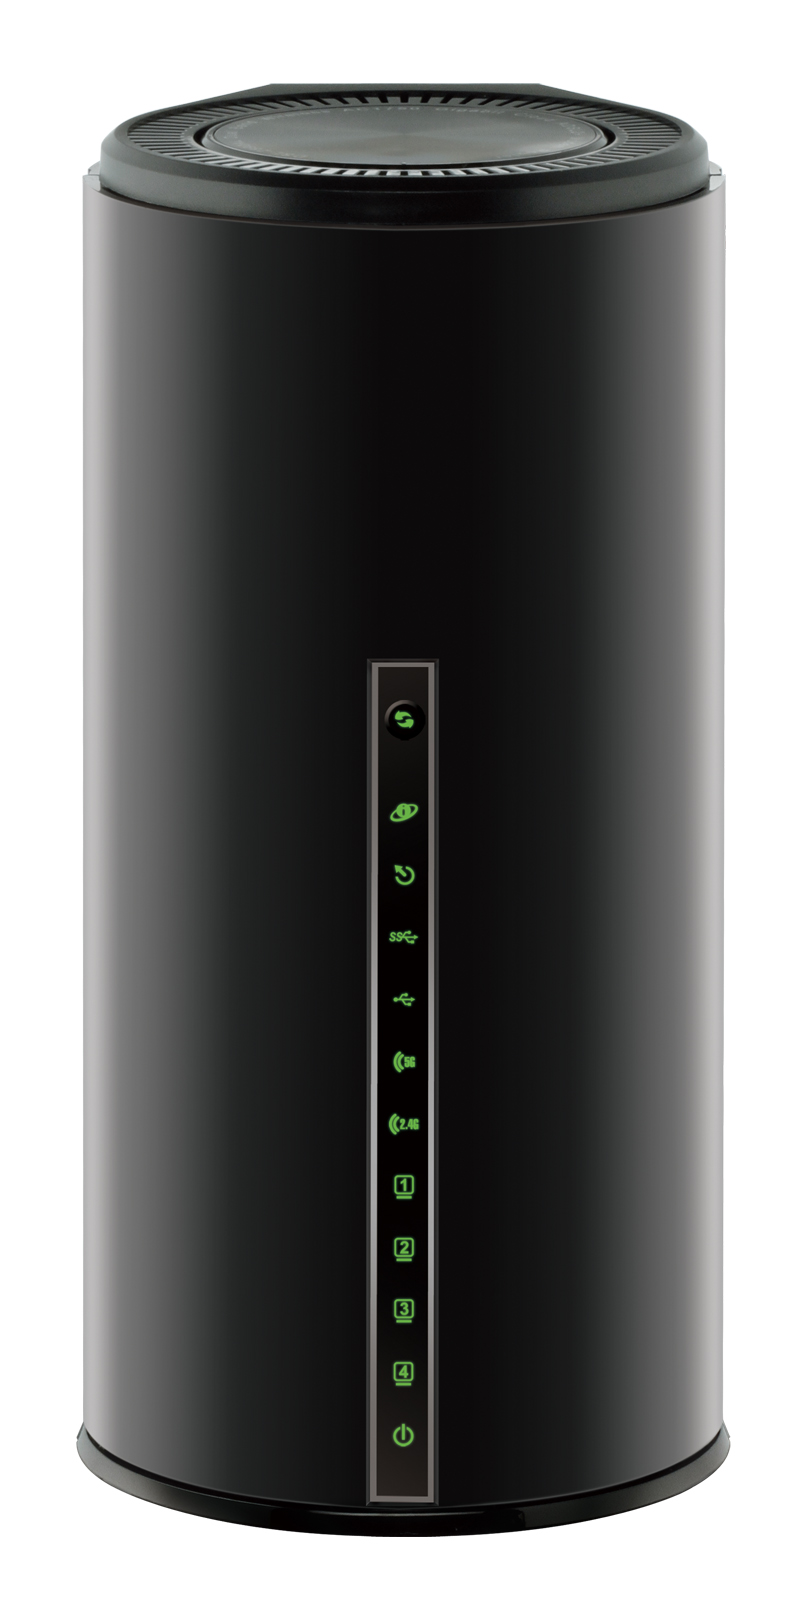 D-Link DSL-2890AL Wireless AC1750 Dual Band Gigabit Cloud ADSL2+ Modem Router